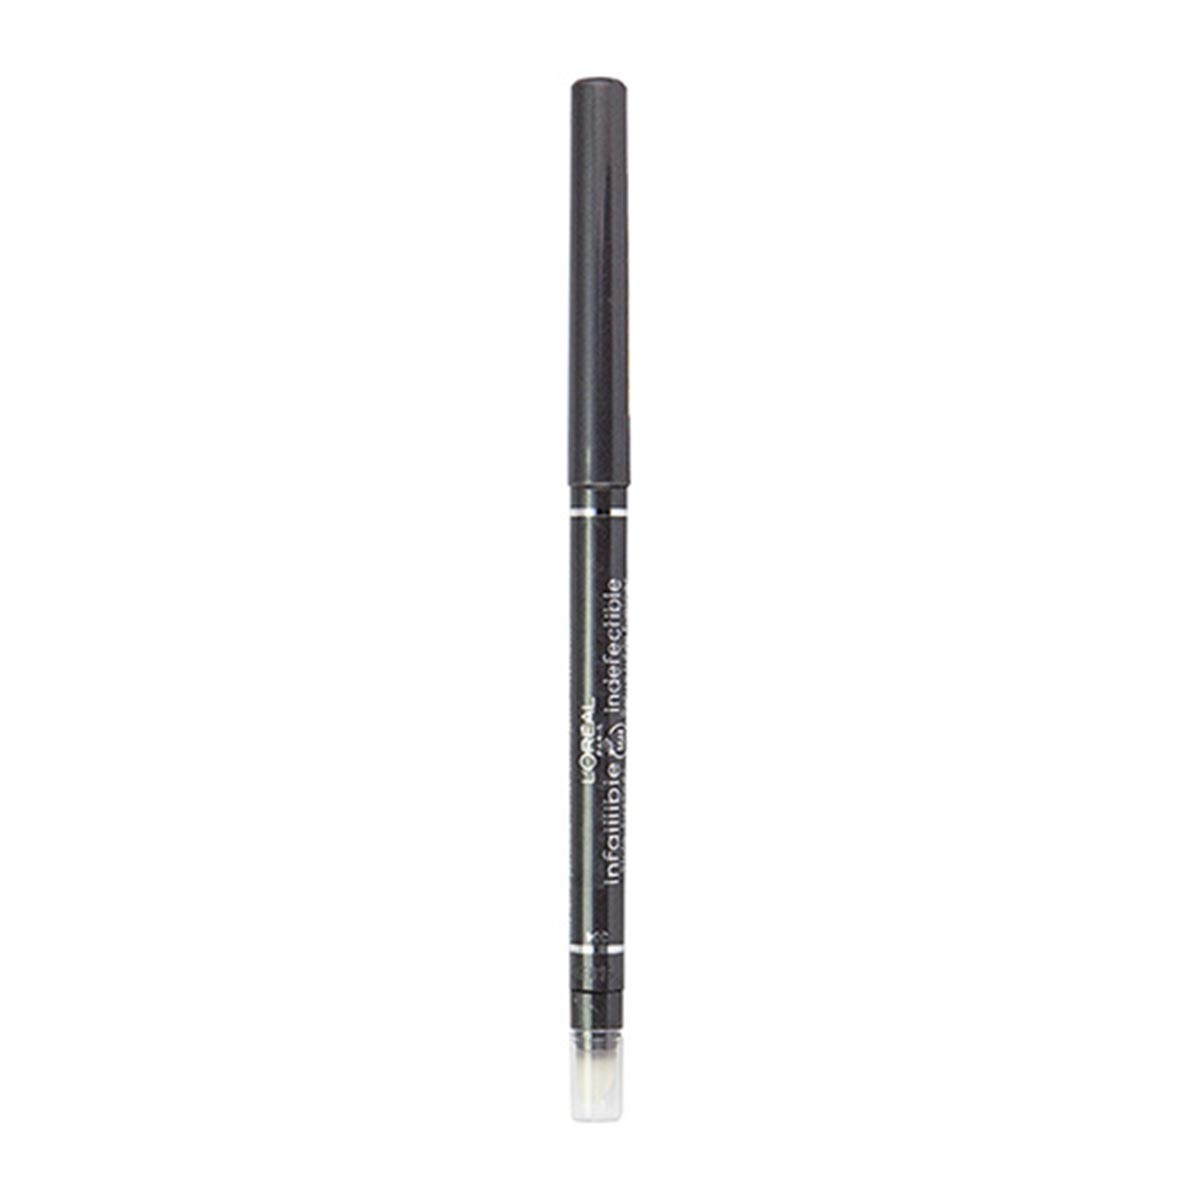 L´oreal L Oreal Infallible Eyeliner 320 Nude Obssession